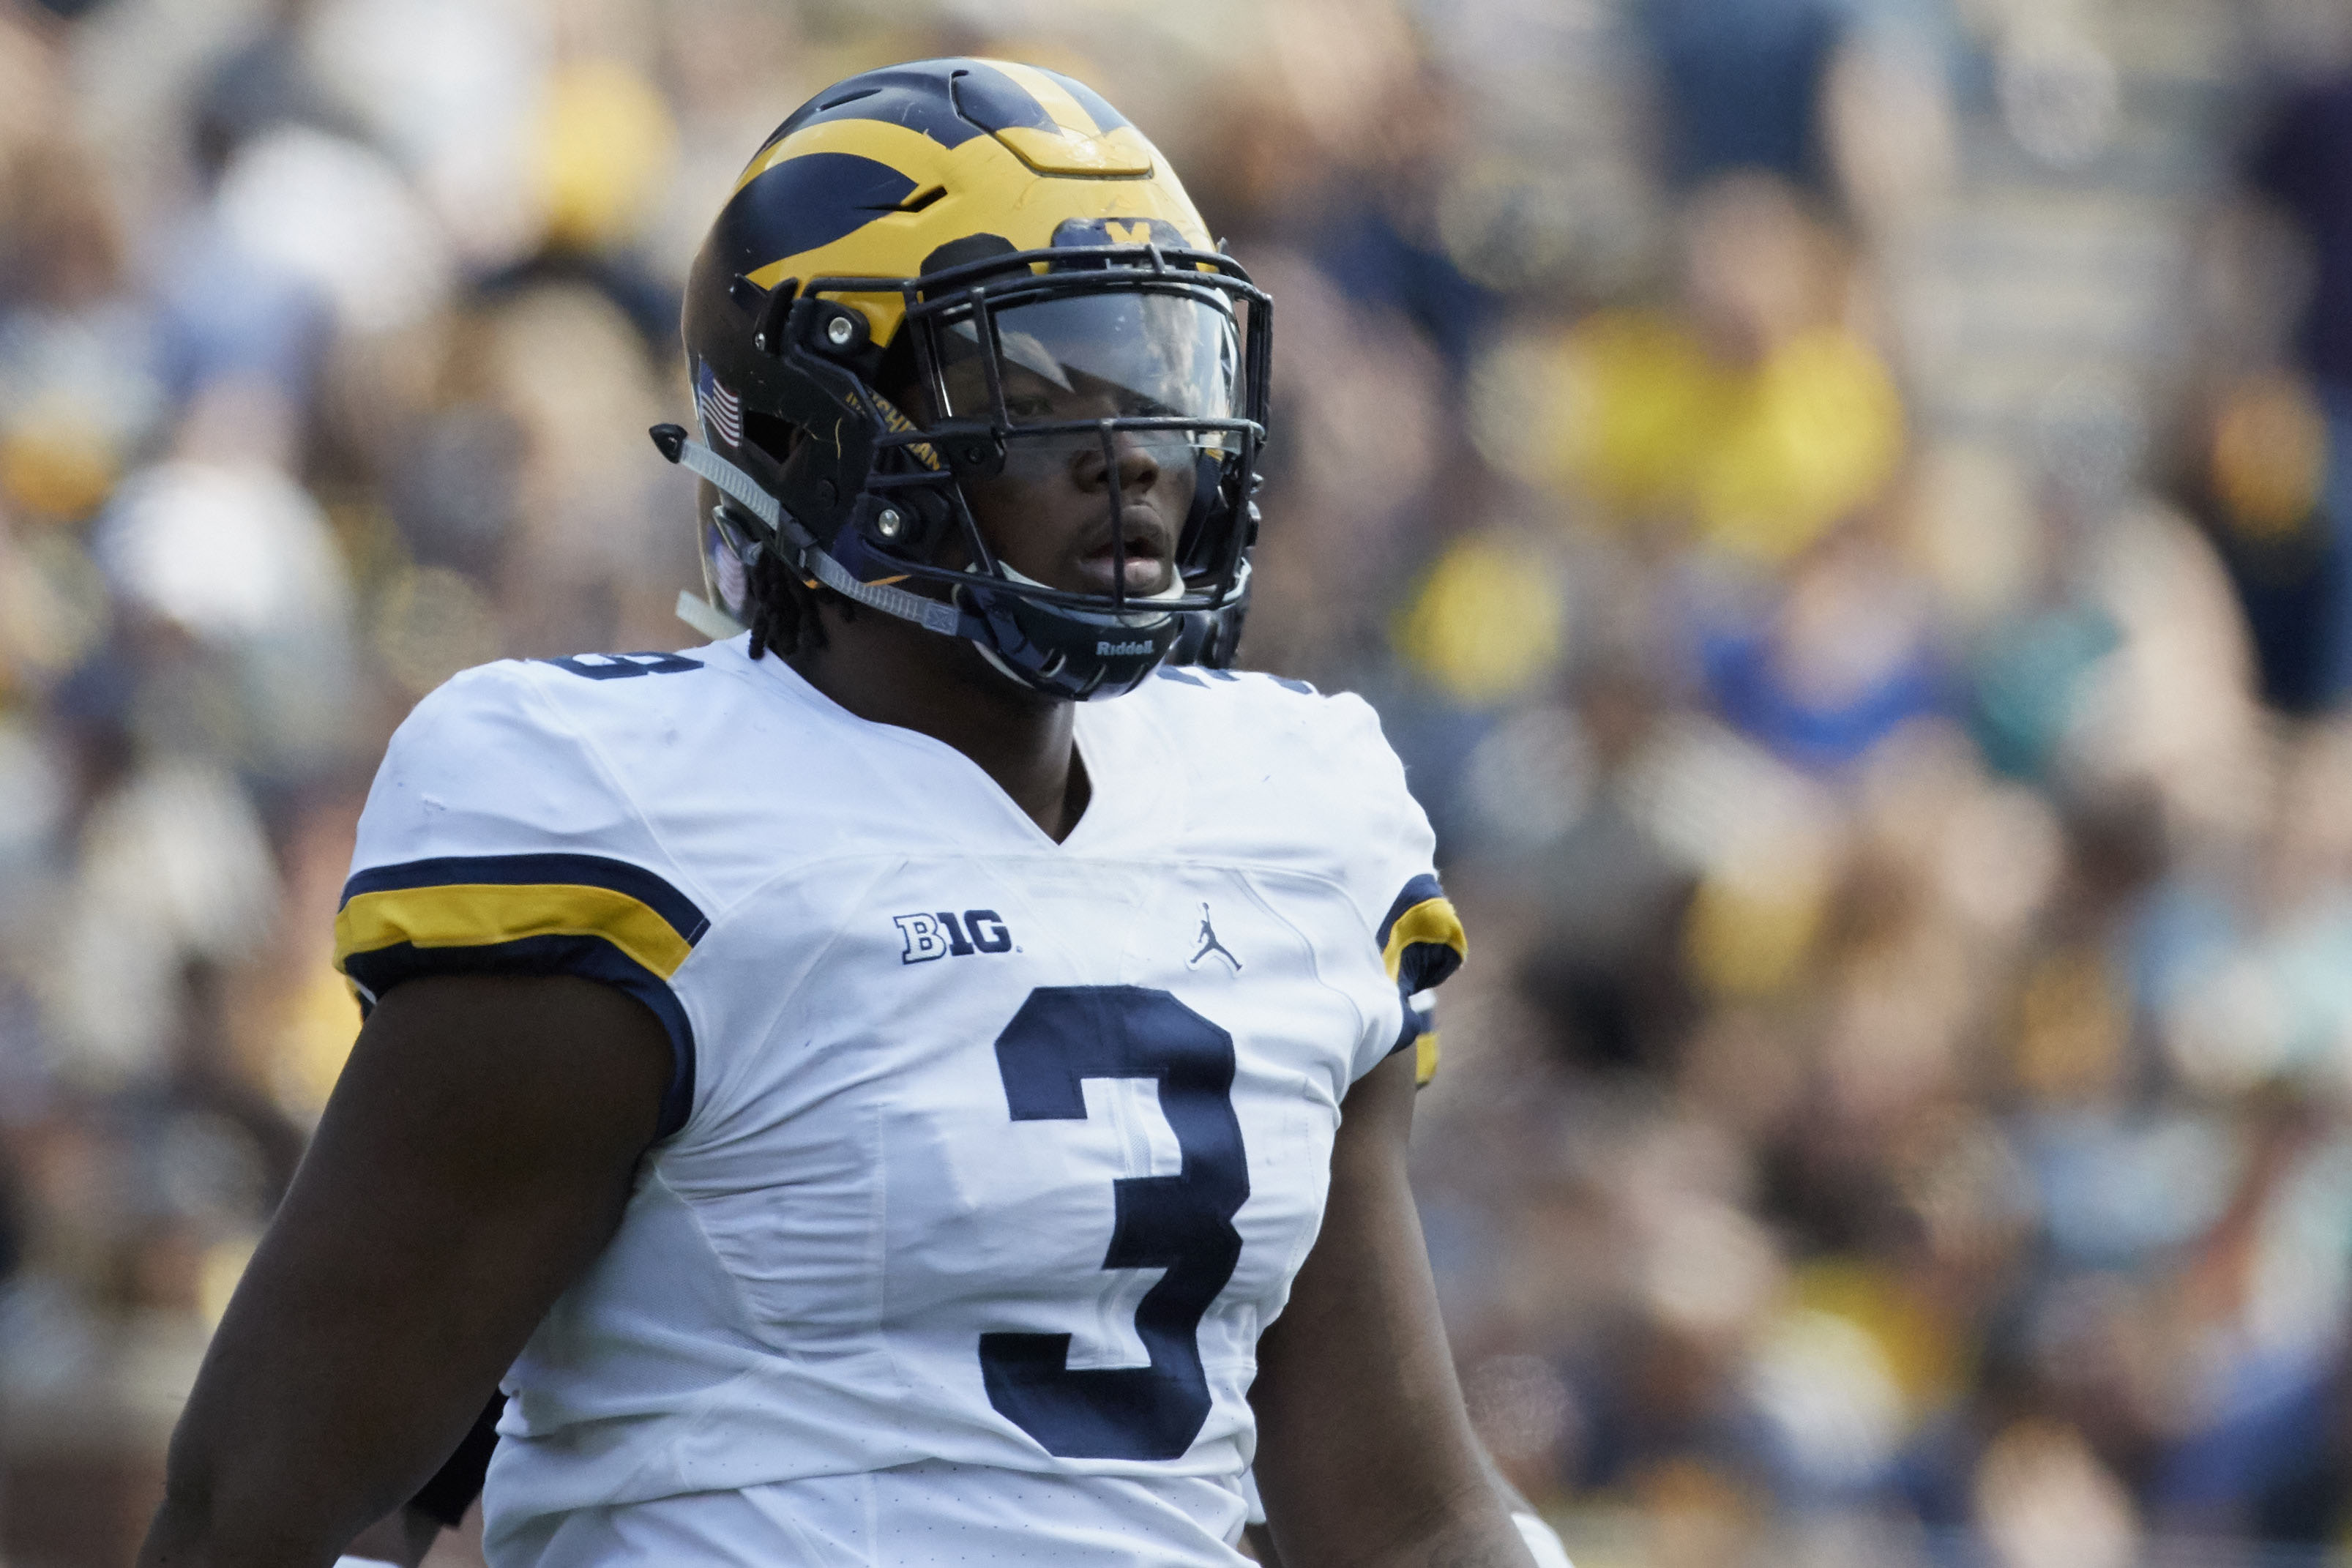 2019 NFL mock draft: Here are the biggest needs for each team in the 1st round